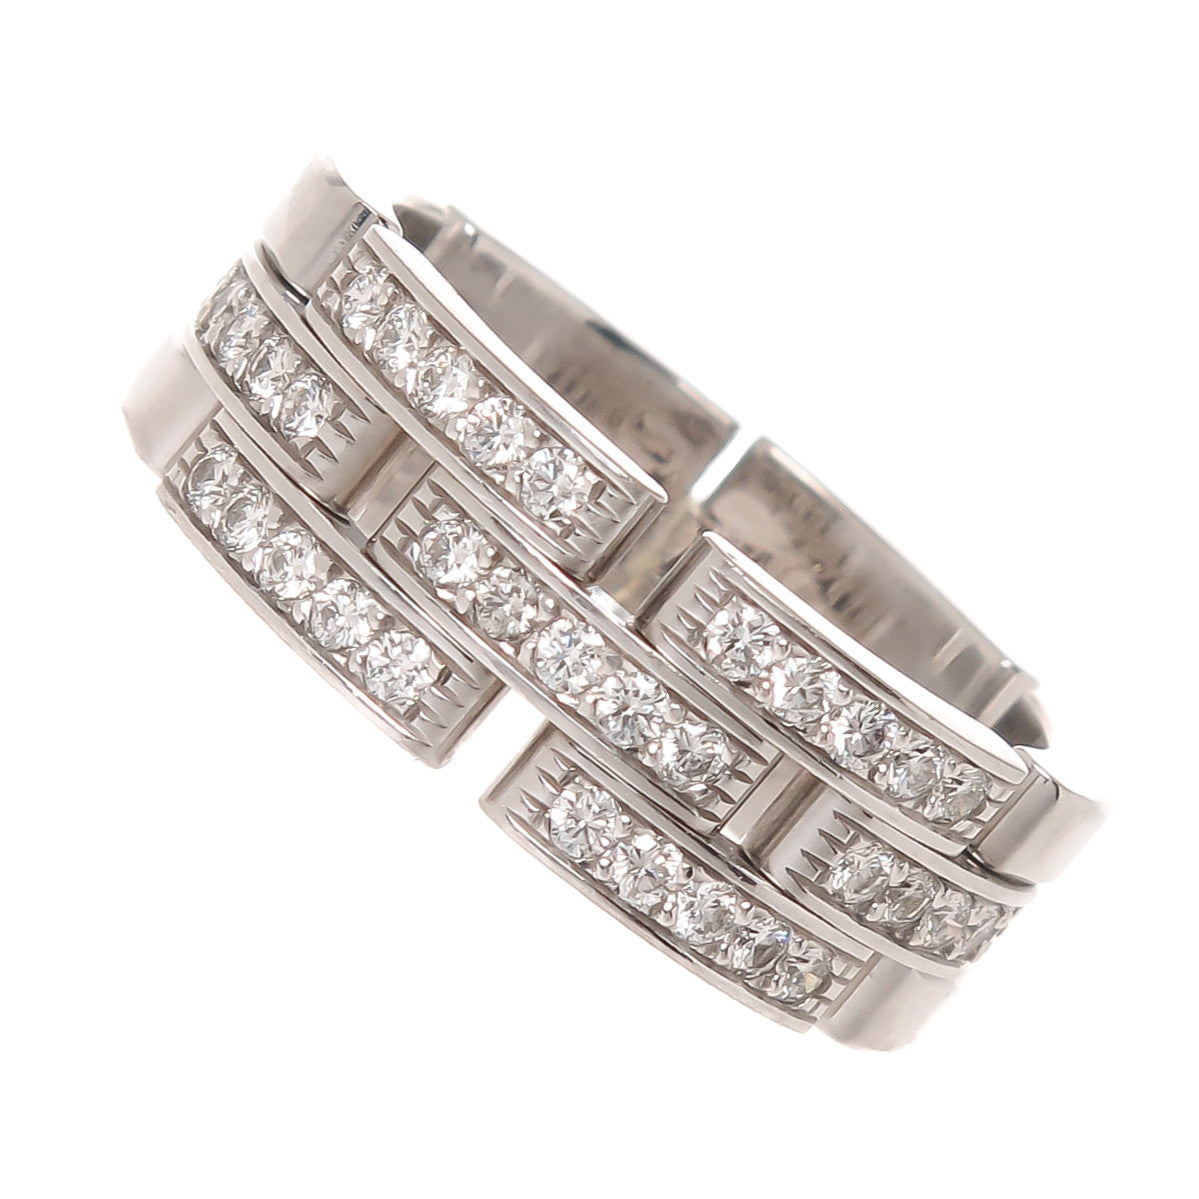 e7f022d6bdc91 Cartier Maillon Panthere Diamond Band Ring